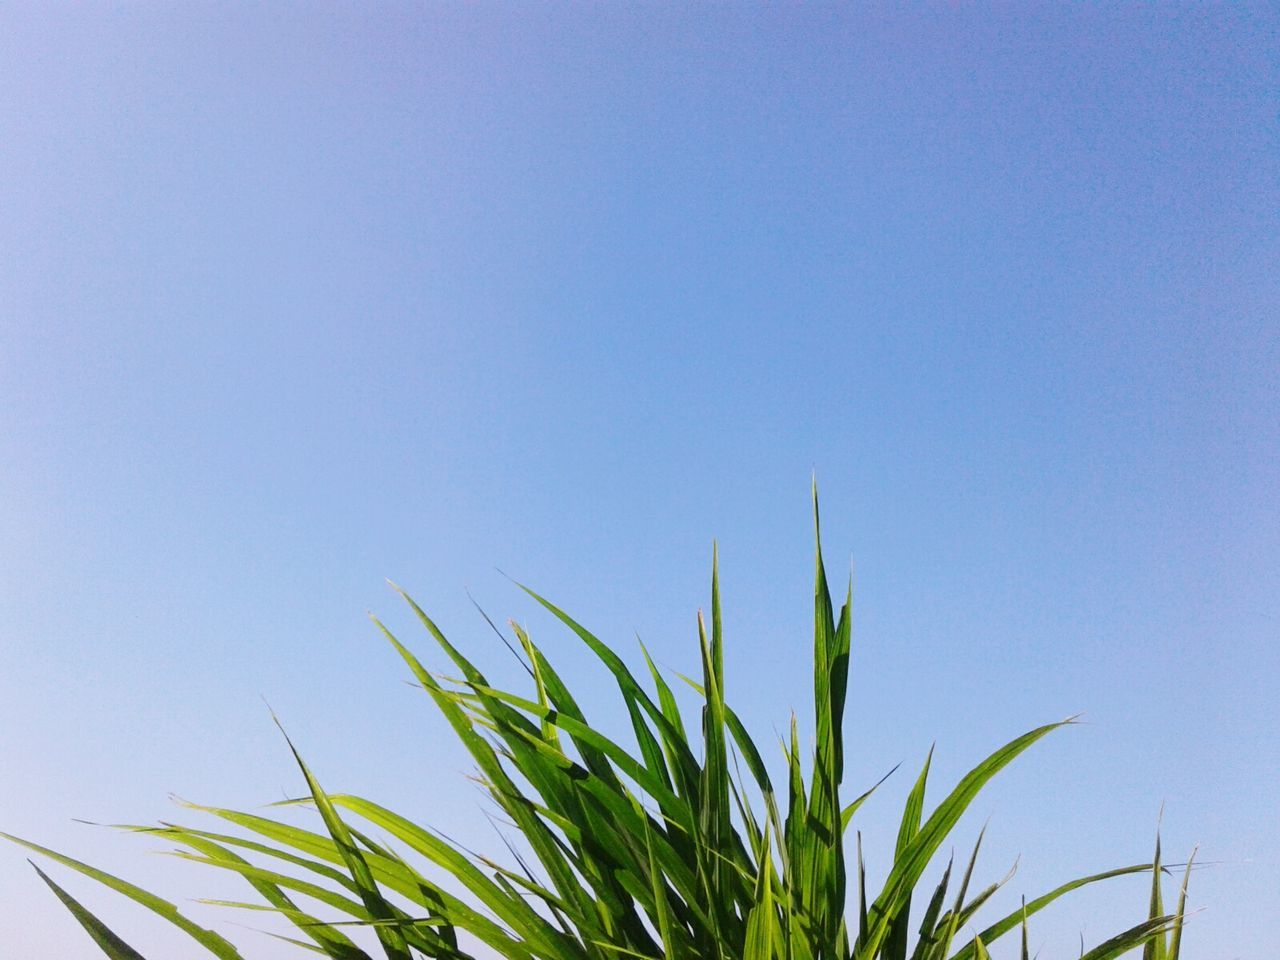 growth, blue, clear sky, plant, copy space, nature, no people, outdoors, day, sky, freshness